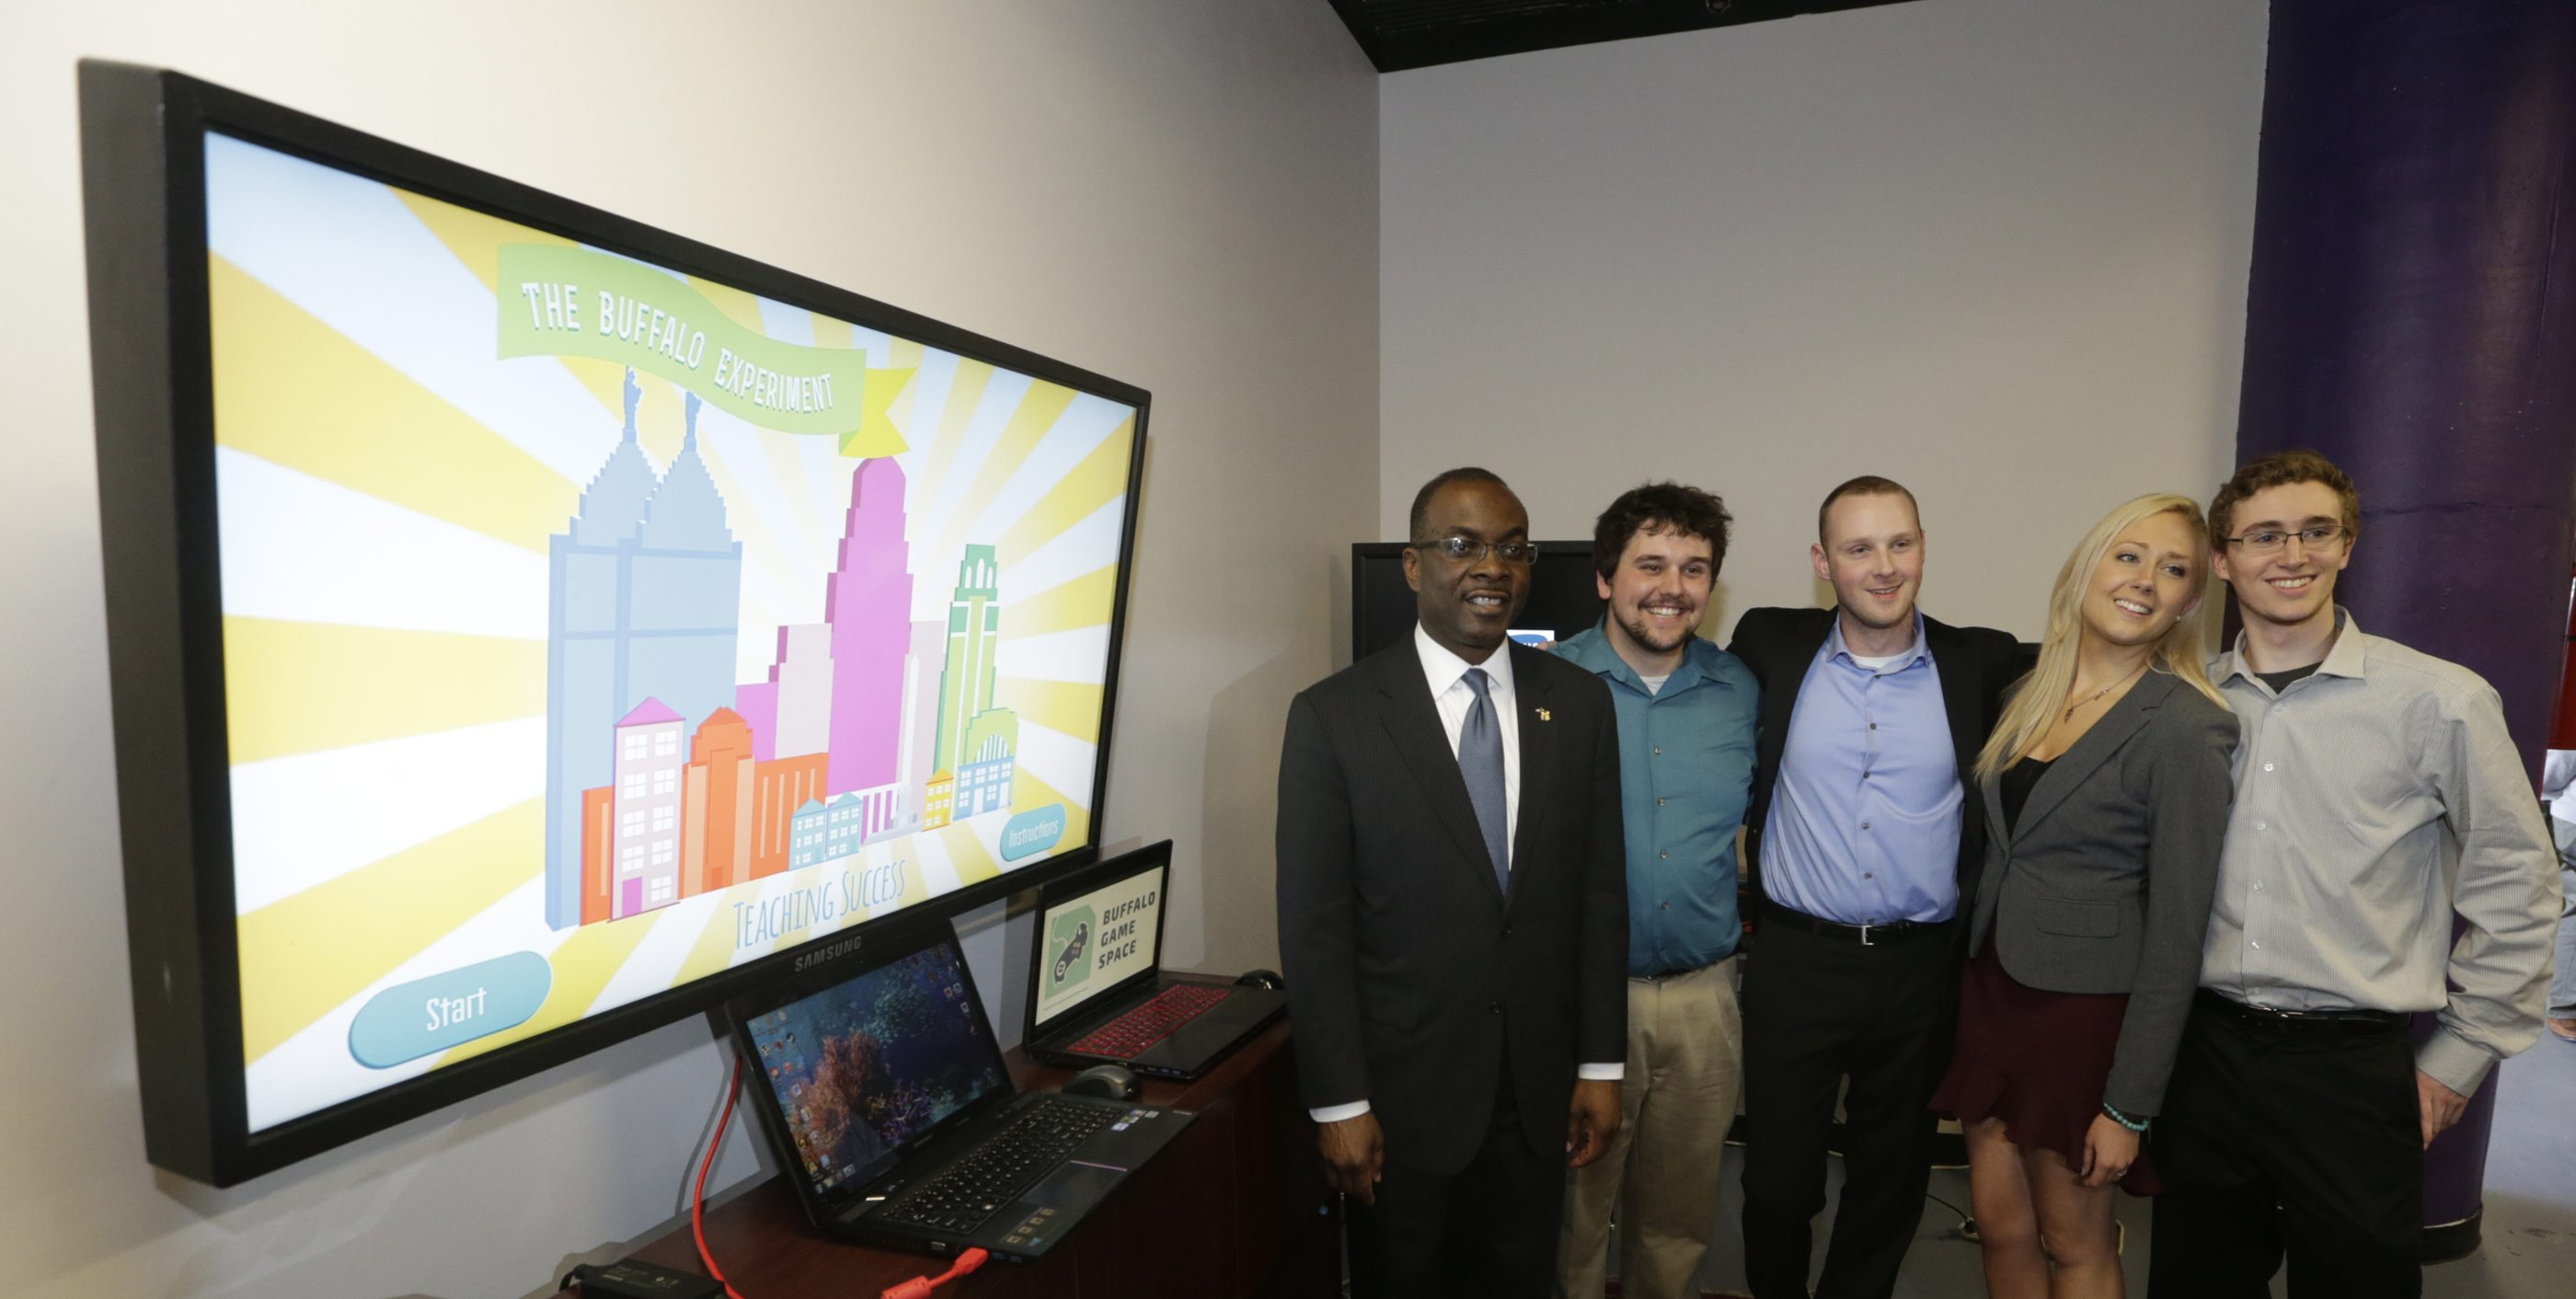 From left, Mayor Byron W. Brown poses for a photo with Canisius College students David Kaplan, Pat Kesterson, Brooke Ballard, and Jared Brown, the winners of the city's first serious computer game design competition, on Saturday at the Tri Main Building in Buffalo.